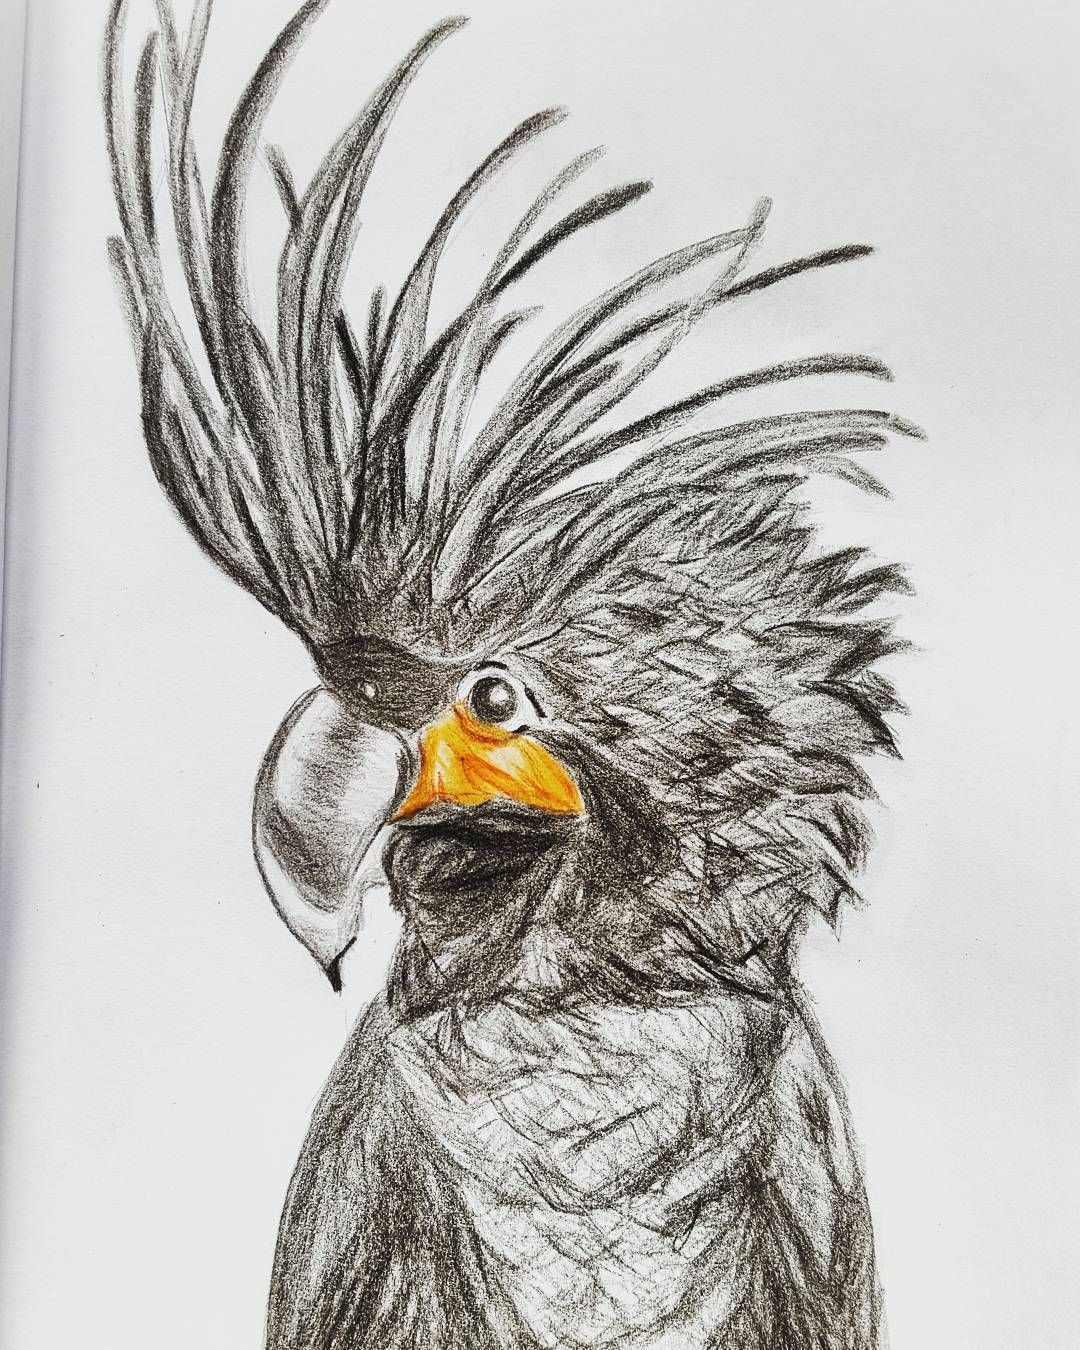 #cacatua #parrot #bird #pajaro #pájaro #feathers #animal #drawing #dibujo #art #arte #coloredpencil #colouredpencil #lapices #lapicesdecolores #realistic #tattoo #artwork #beautiful #artist #myart